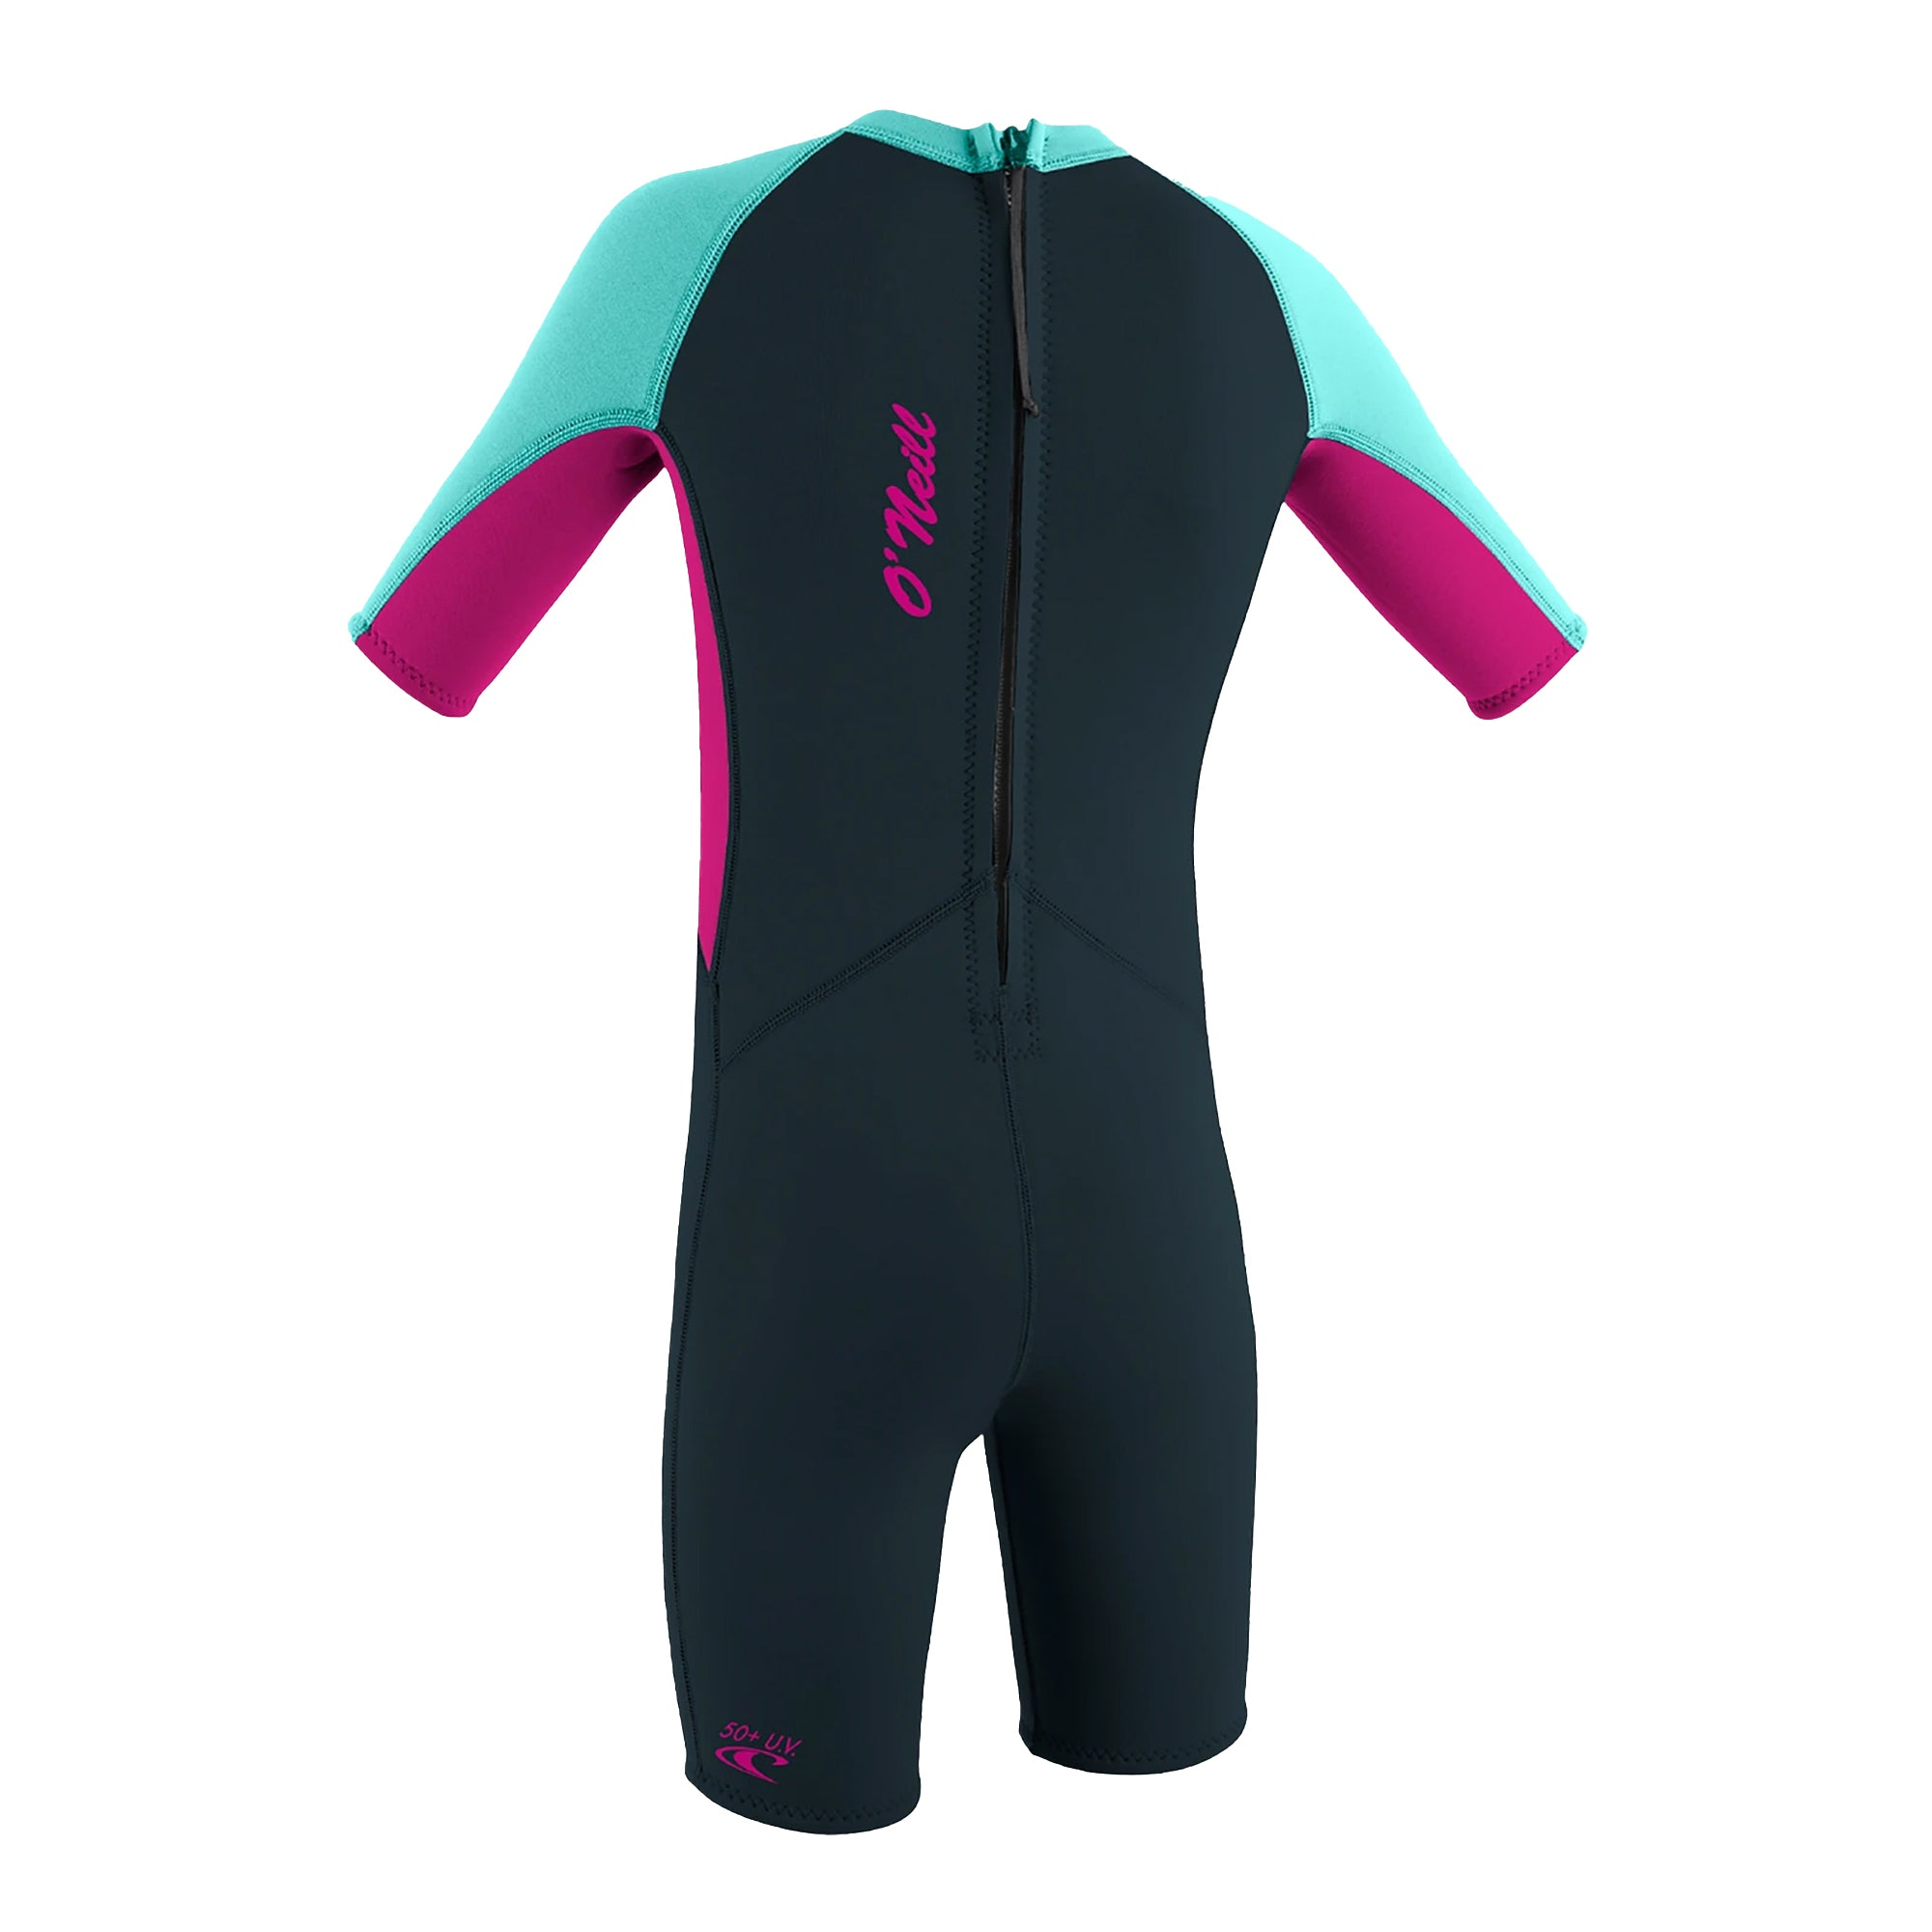 O'Neill Reactor II 2mm Toddler Girl's Back-Zip Spring Suit Wetsuit